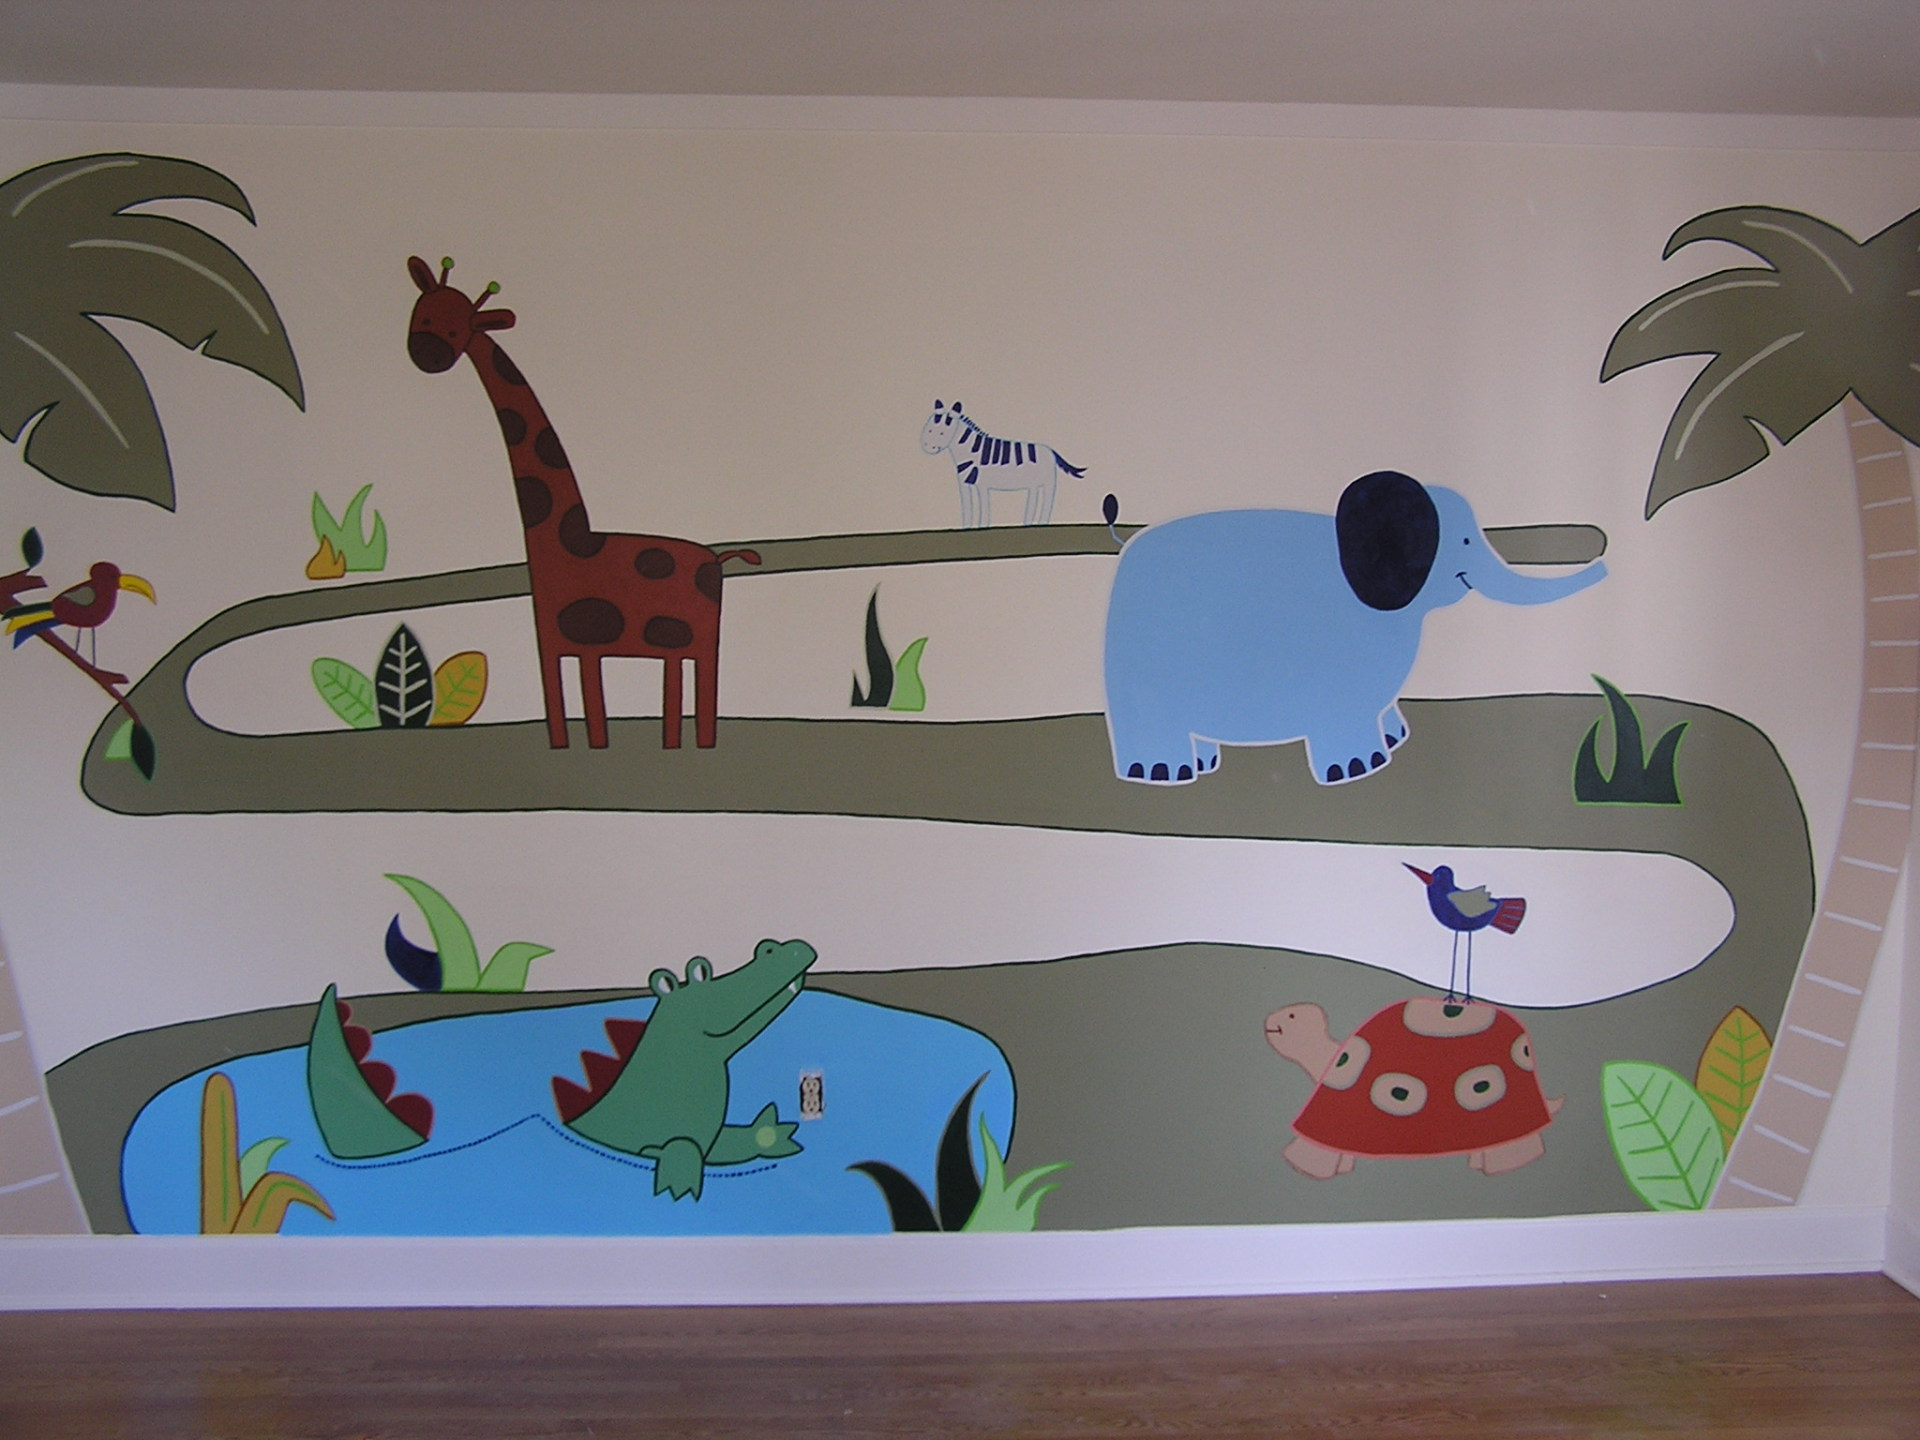 Children's Room Wall Mural